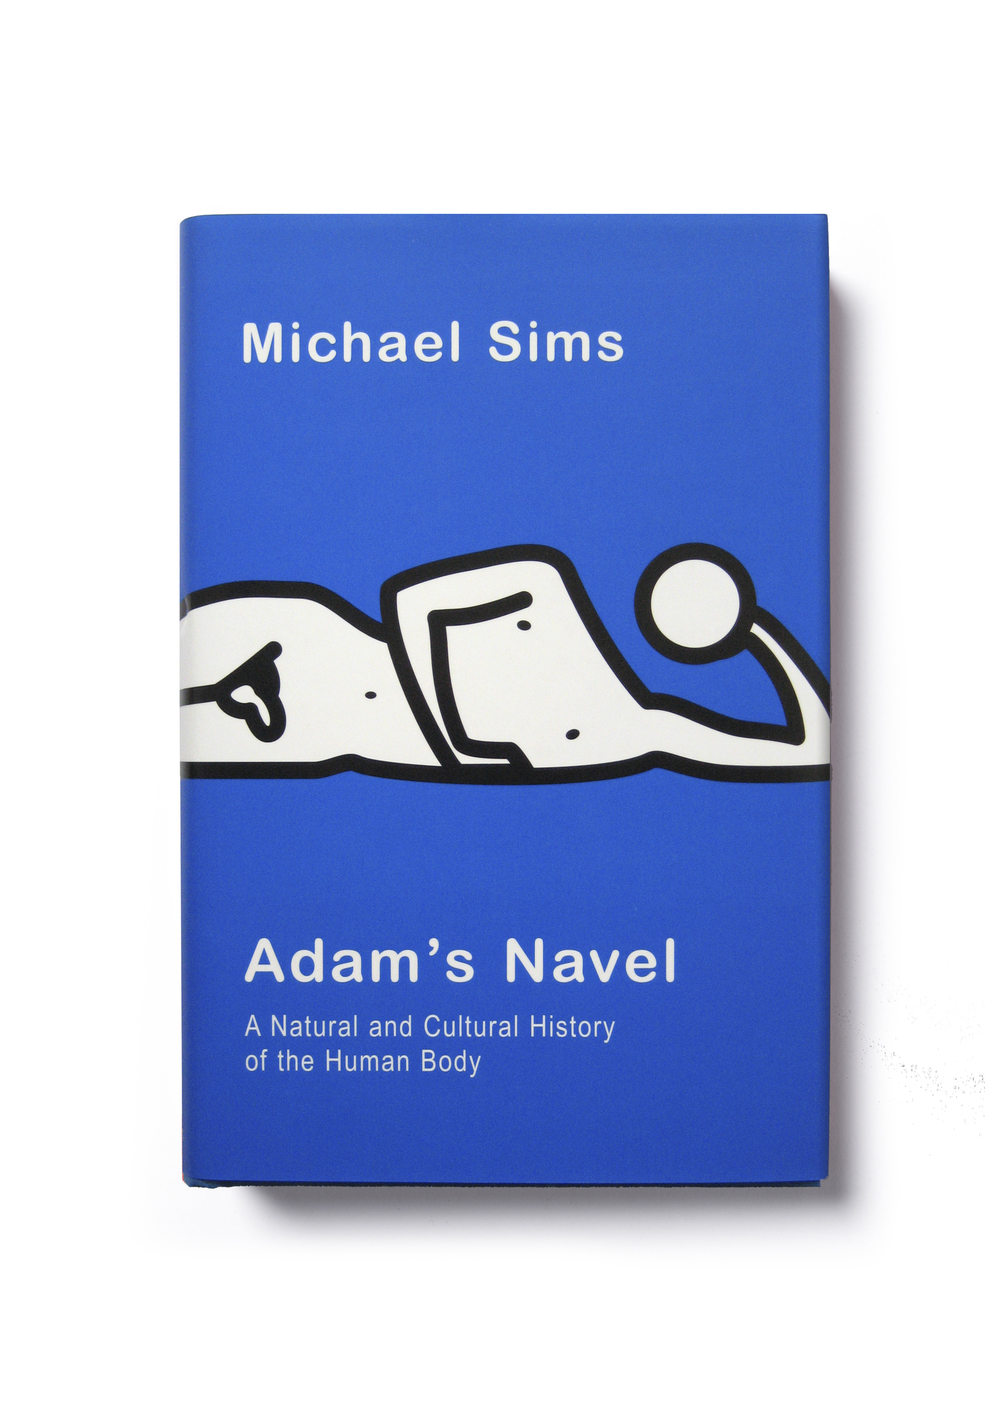 Adam's Navel by Michael Sims - Art: Julian Opie Design: Jim Stoddart